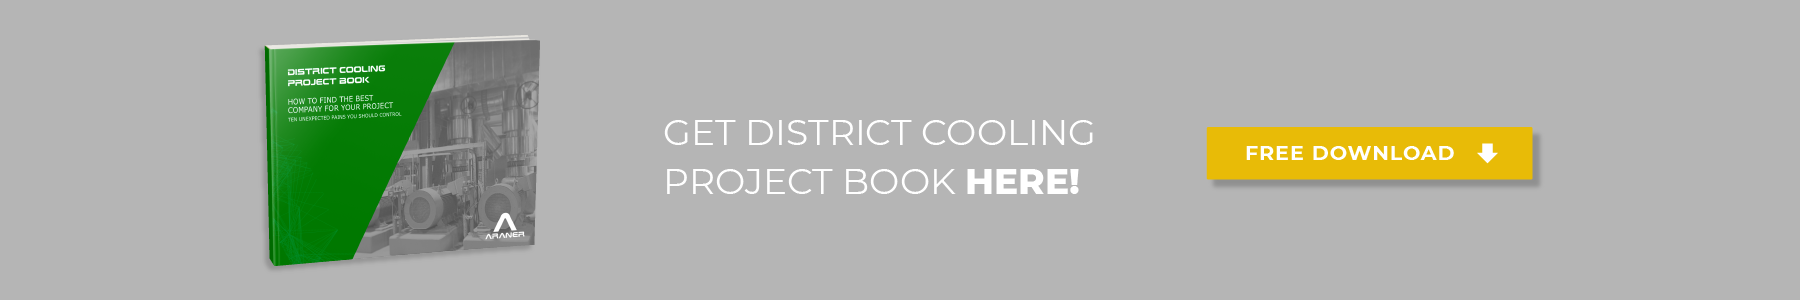 Your District Cooling Project is safe in the hands of ARANER